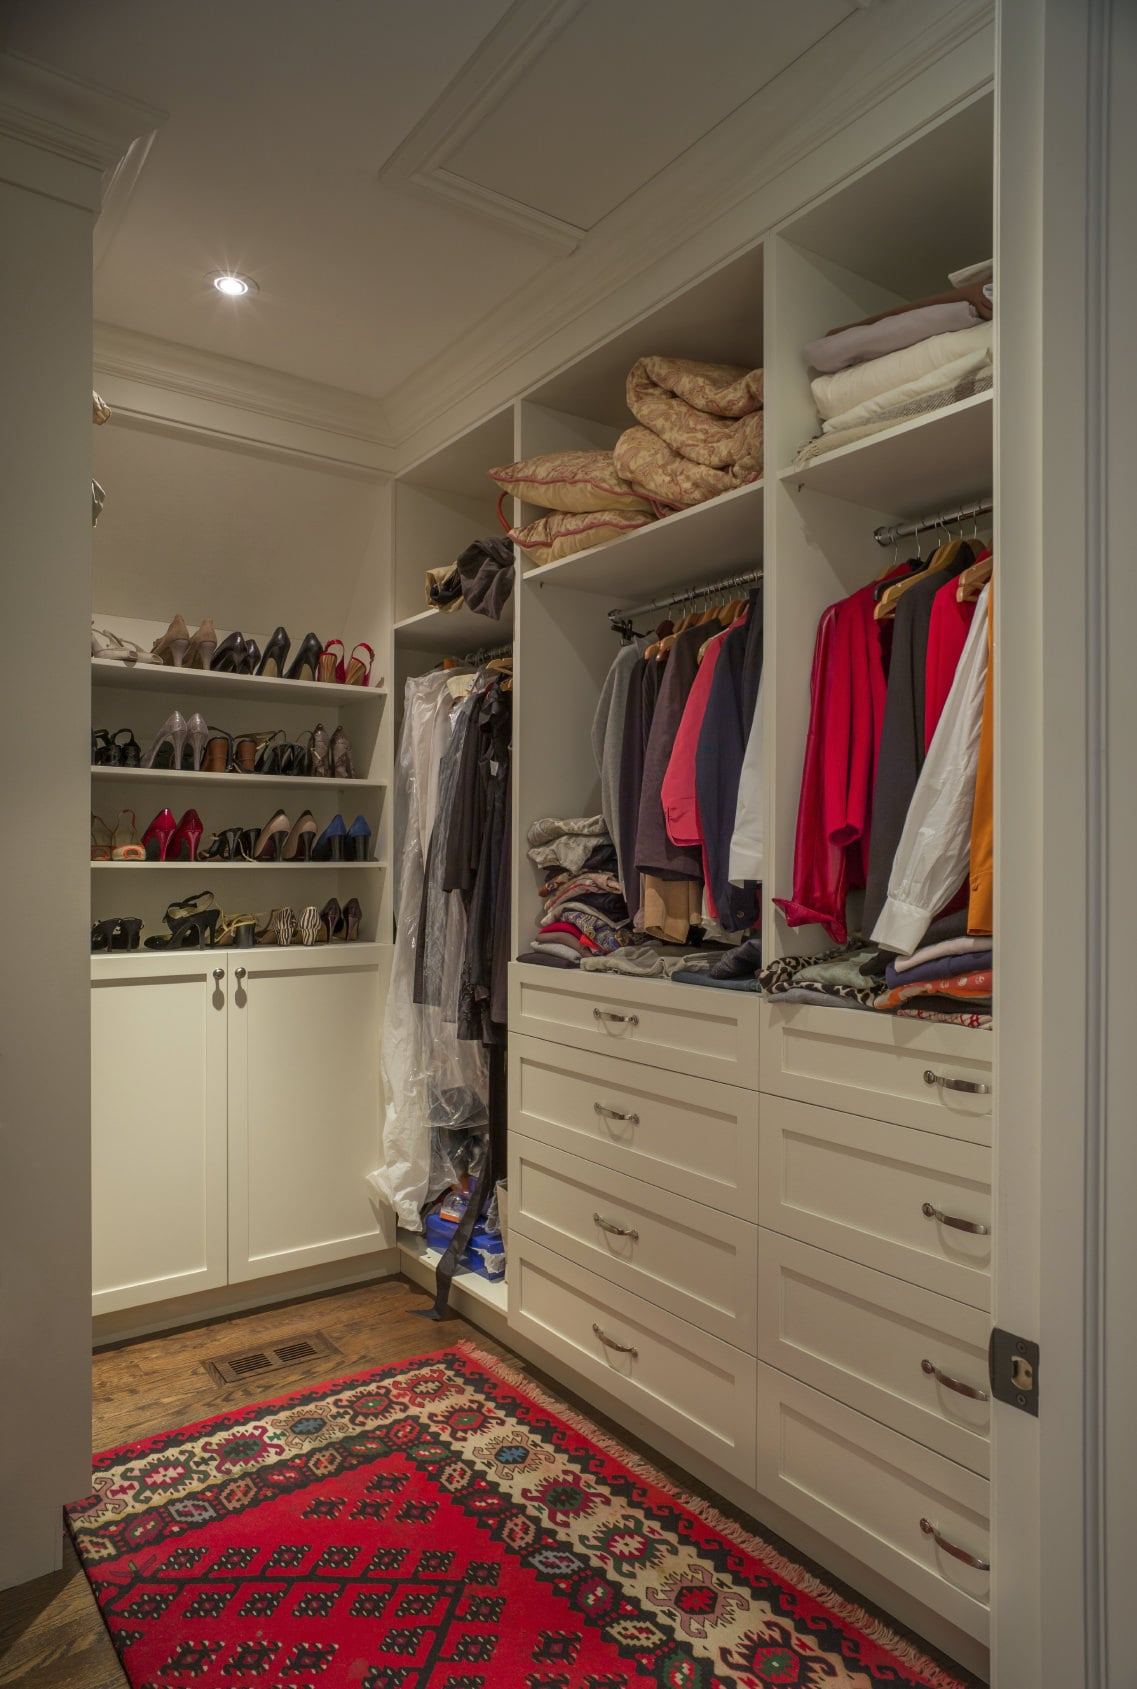 A red printed rug adds a nice accent in this walk-in closet with hardwood flooring and white cabinets blending in with the walls and ceiling that's lined with crown molding.